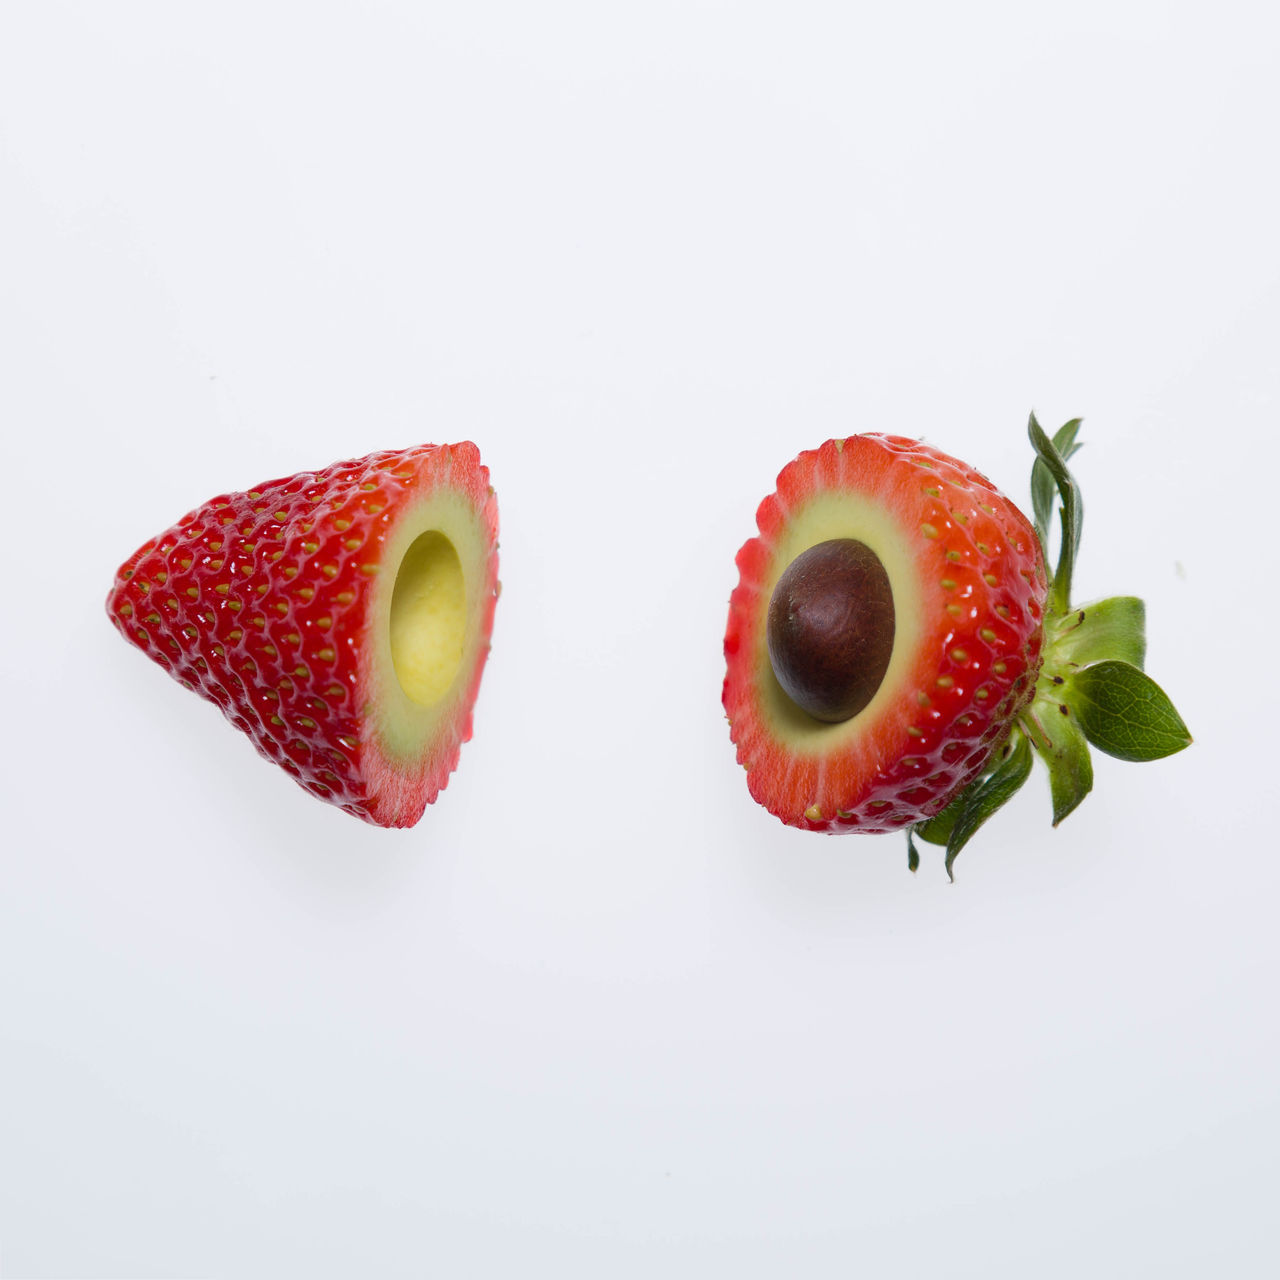 white background, studio shot, food and drink, food, healthy eating, fruit, freshness, still life, wellbeing, copy space, indoors, close-up, halved, cross section, cut out, no people, two objects, red, green color, slice, ripe, temptation